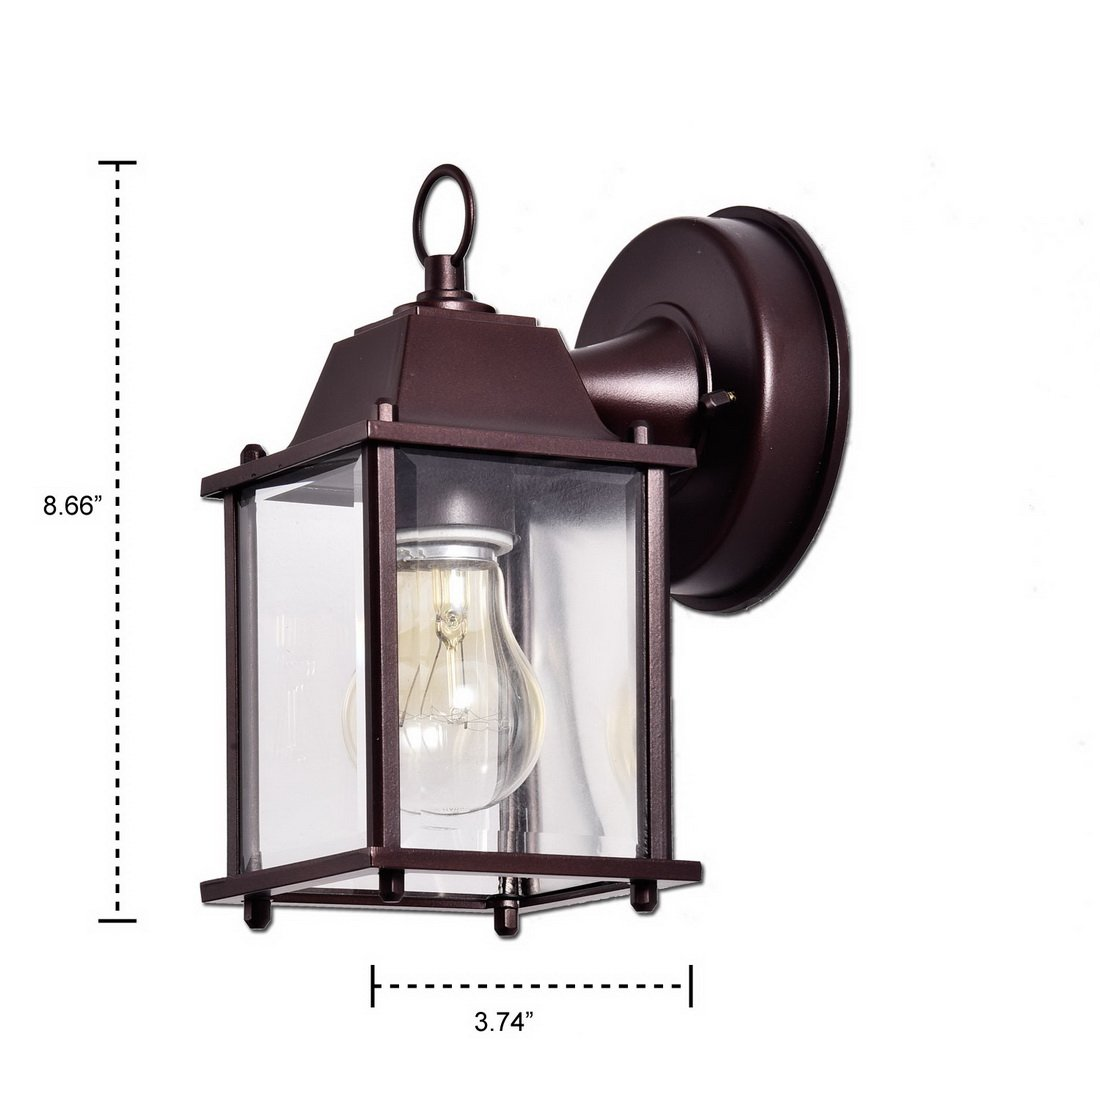 Truelite Vintage Style Outdoor Wall Sconce 1 Light Industrial Clear Glass Panels Wall Lanterns 1